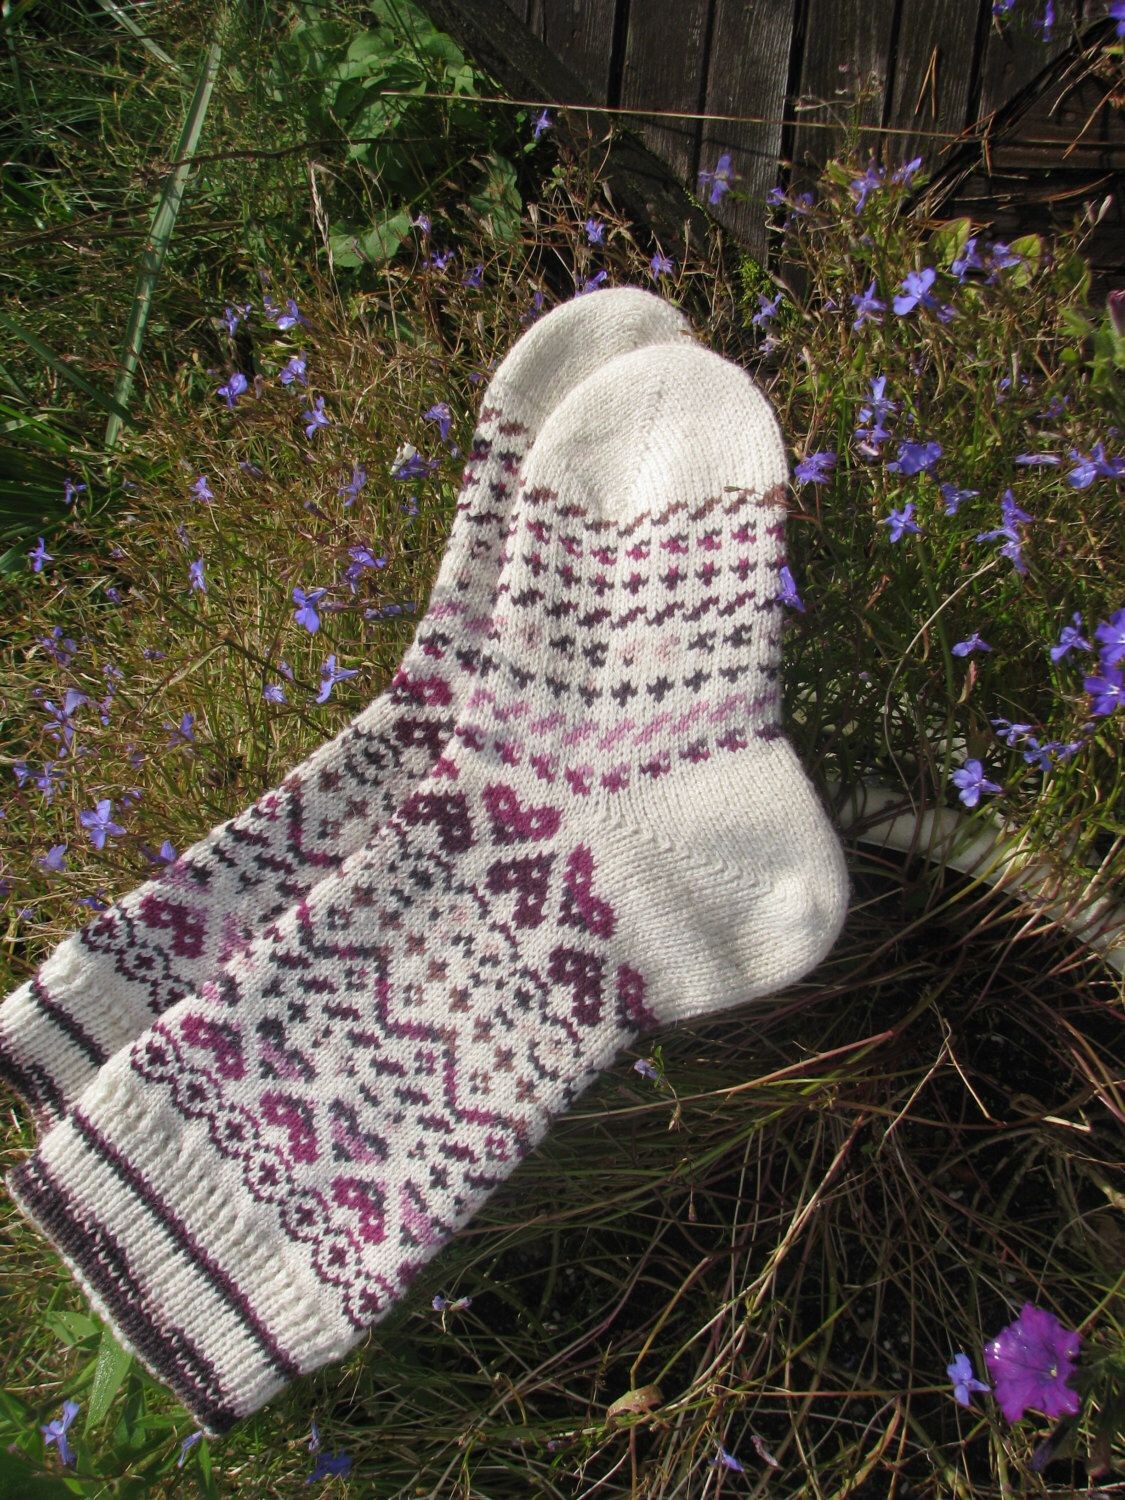 Knit socks wool socks knitted socks scandinavian pattern norwegian knit socks wool socks knitted socks scandinavian pattern norwegian socks christmas socks gift to man gift to woman men socks women socks bankloansurffo Image collections